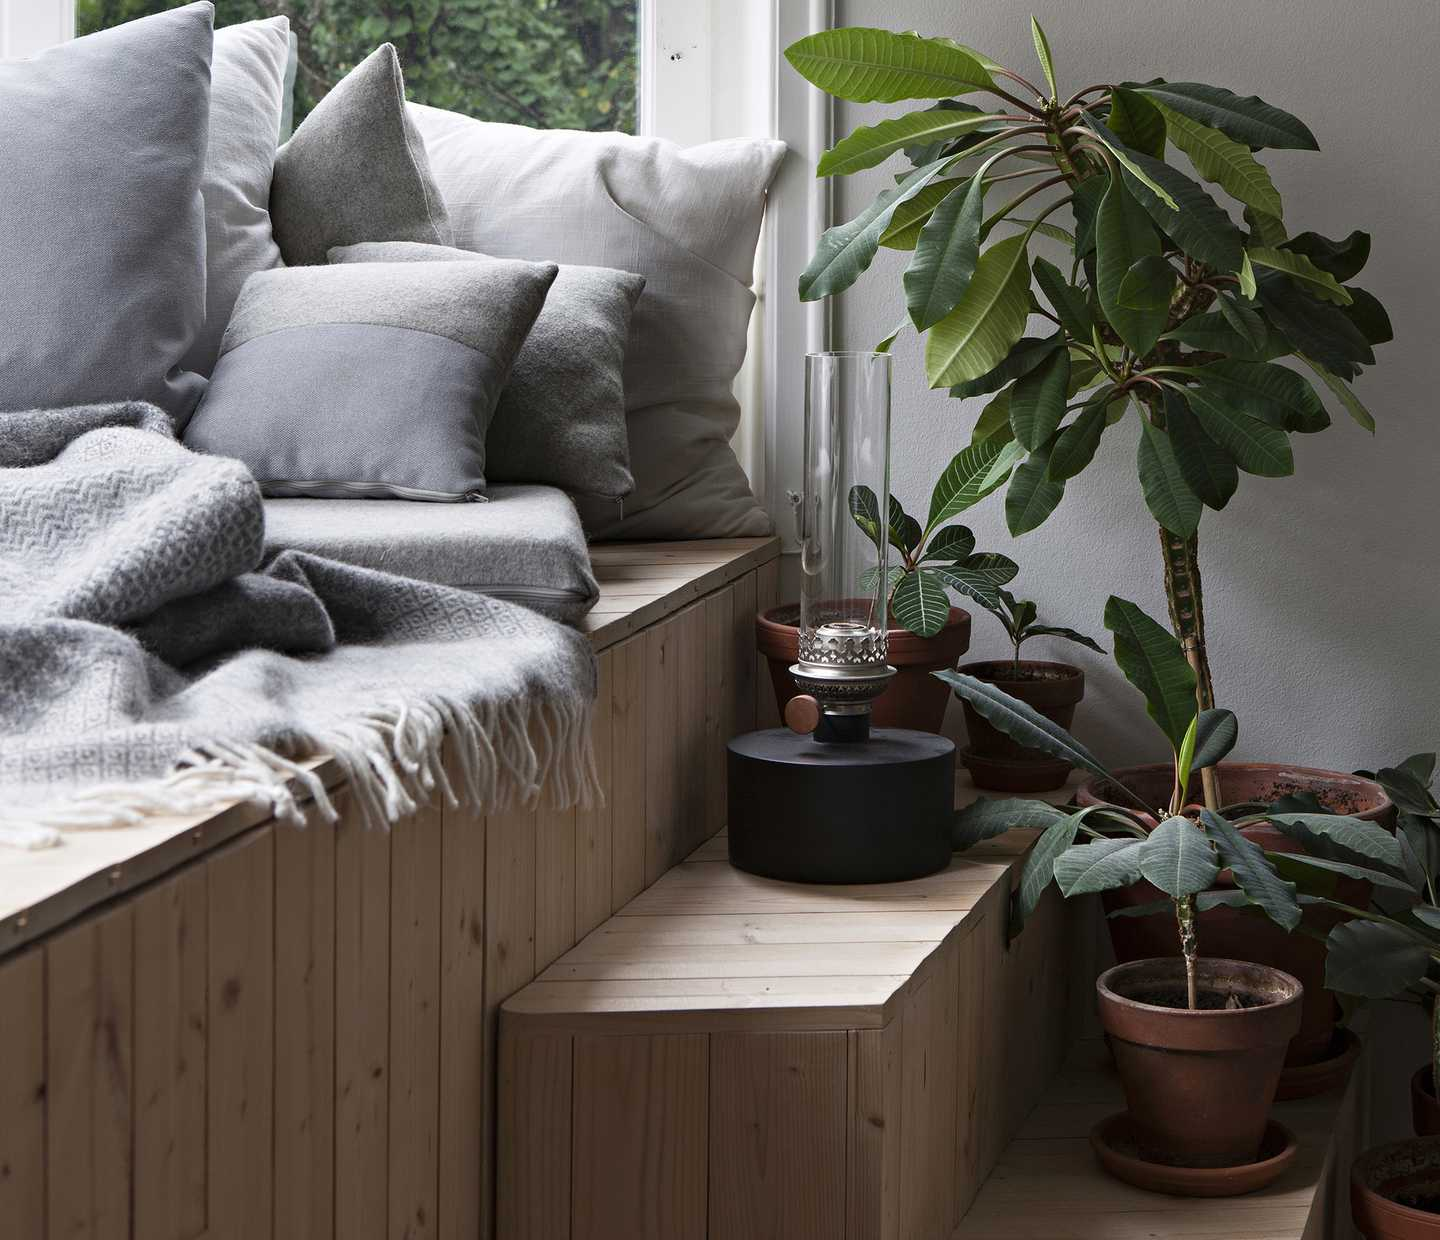 A window seat with pillows and houseplants nearby